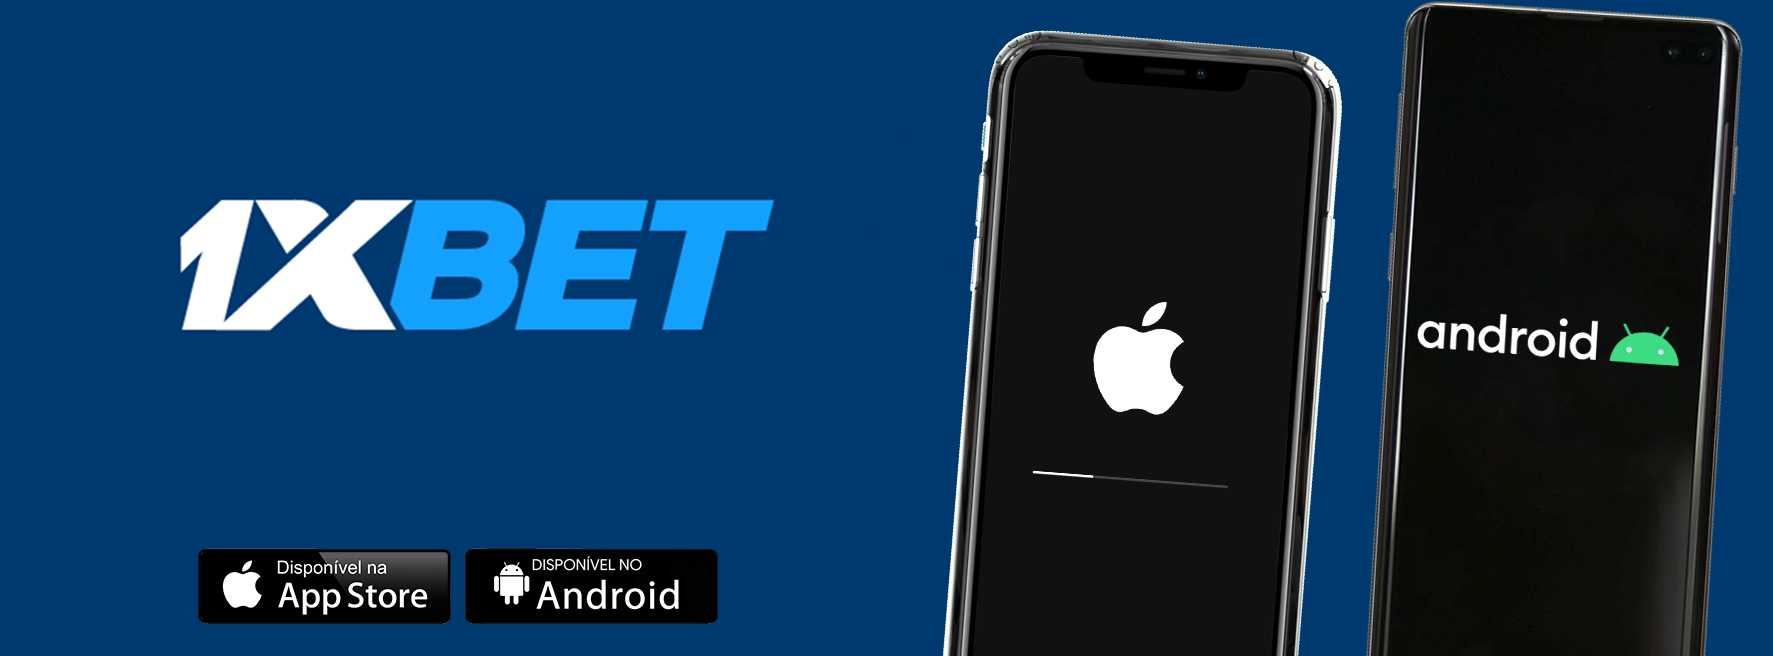 1xBet India: mobile app for Android and iOS.